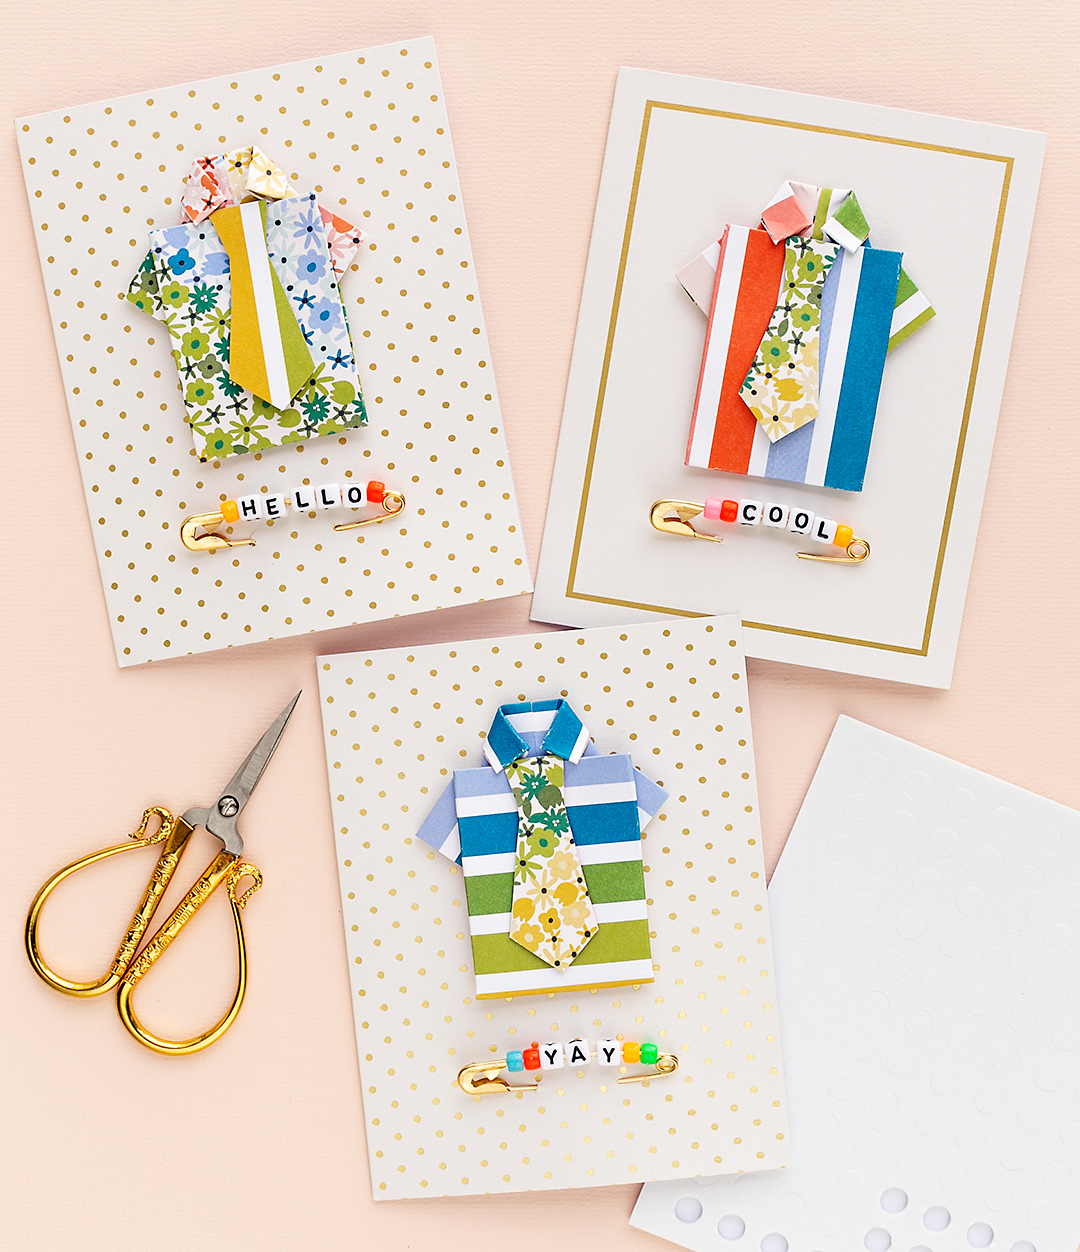 Three Father's Day cards with shirts and ties. Made with the Works All-In-One-Tool by We R Memory Keepers. Cardmaking Scrapbooking